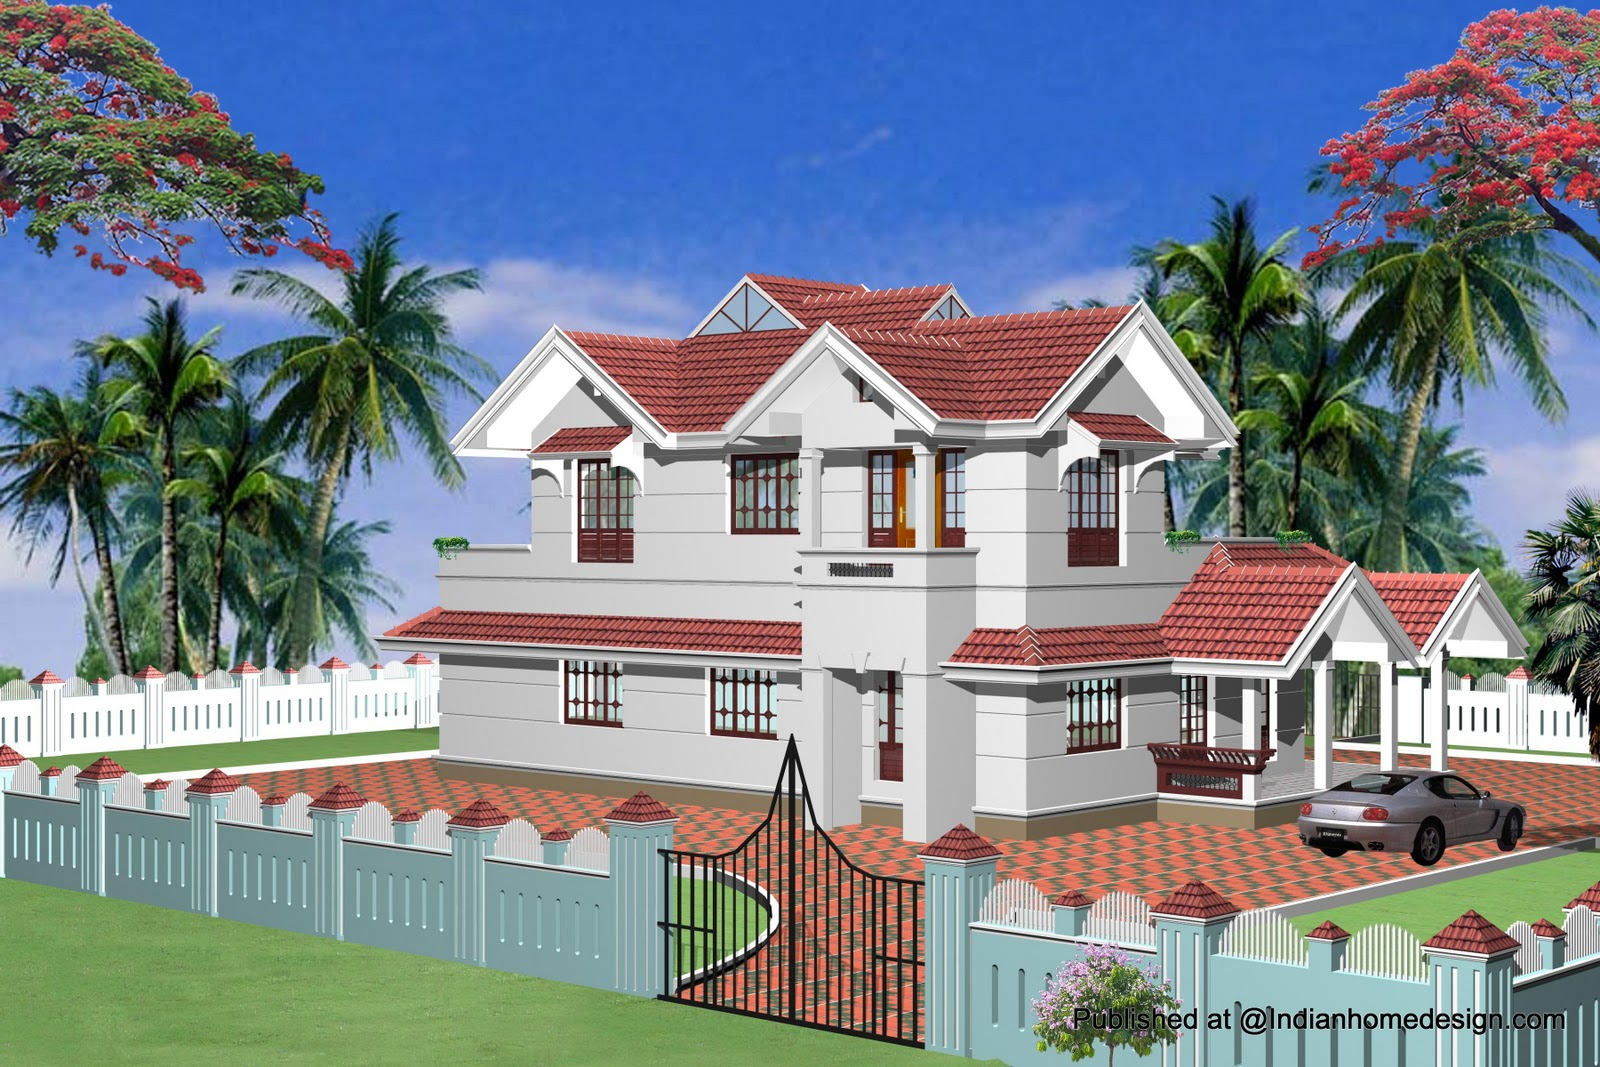 Architectural house plans india omahdesigns net Good house designs in india